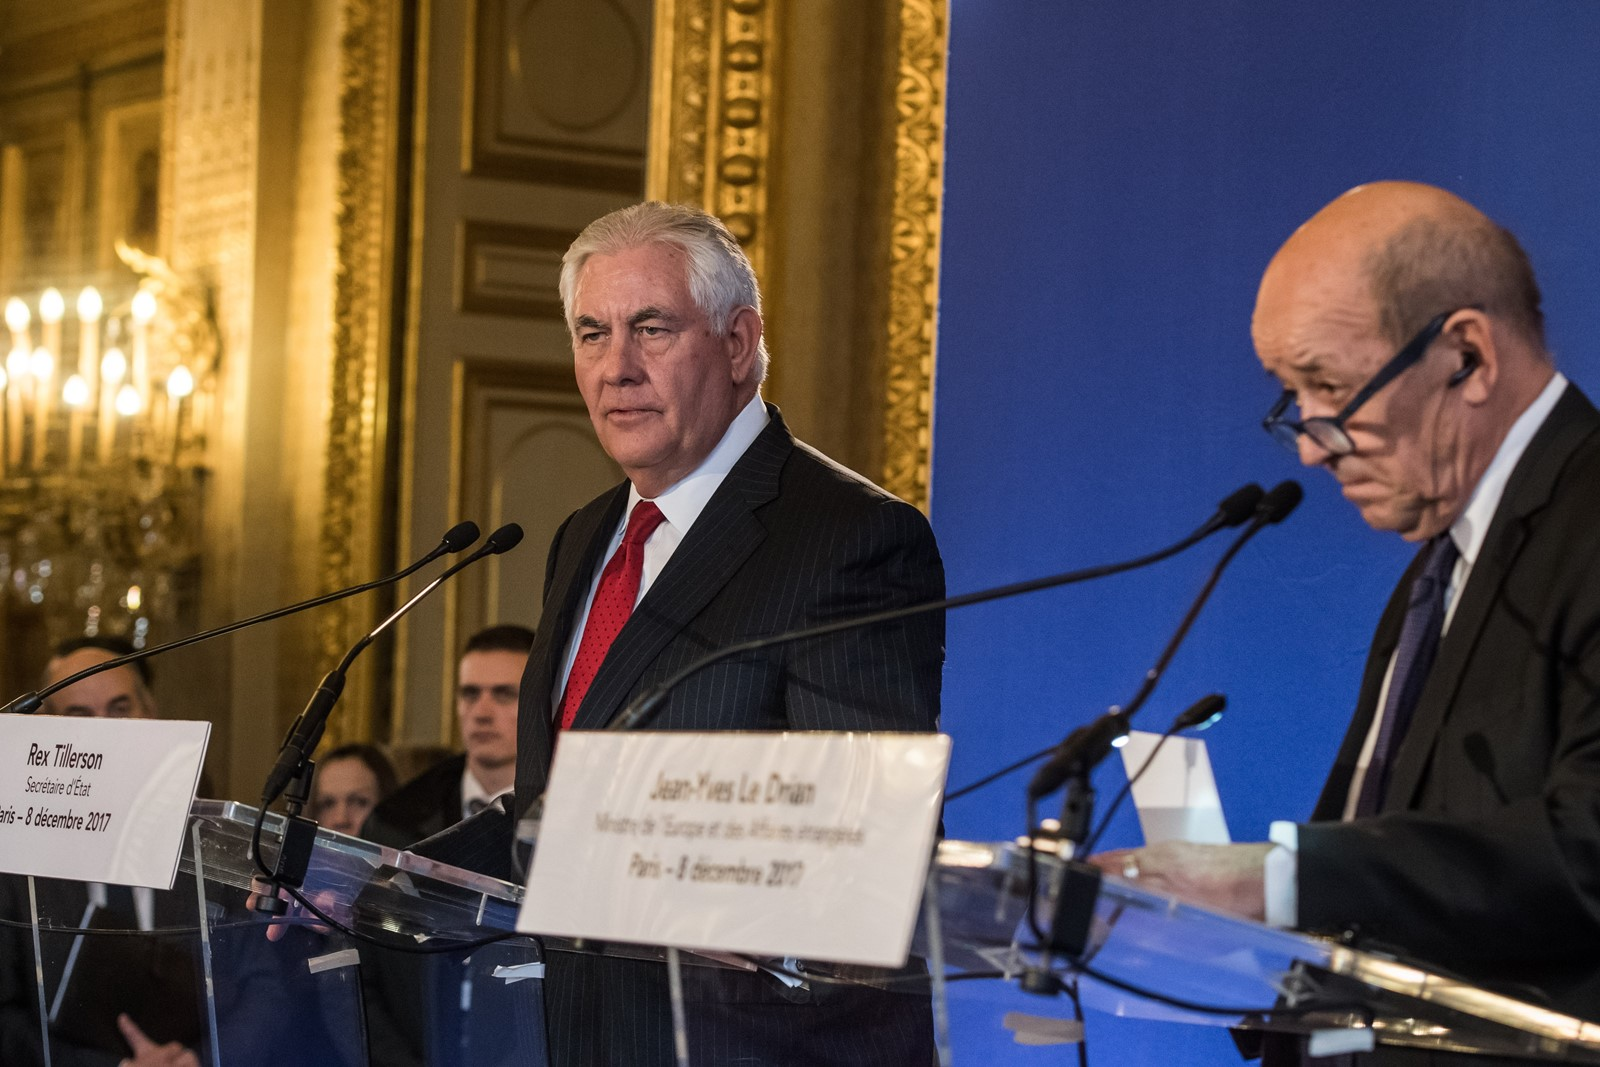 U.S. Secretary of State Rex Tillerson, left, and French Foreign Minister Jean-Yves Le Drian address reporters last week in Paris. — Photograph: Christophe Petit Tesson/European Pressphoto Agency/Shutterstock.